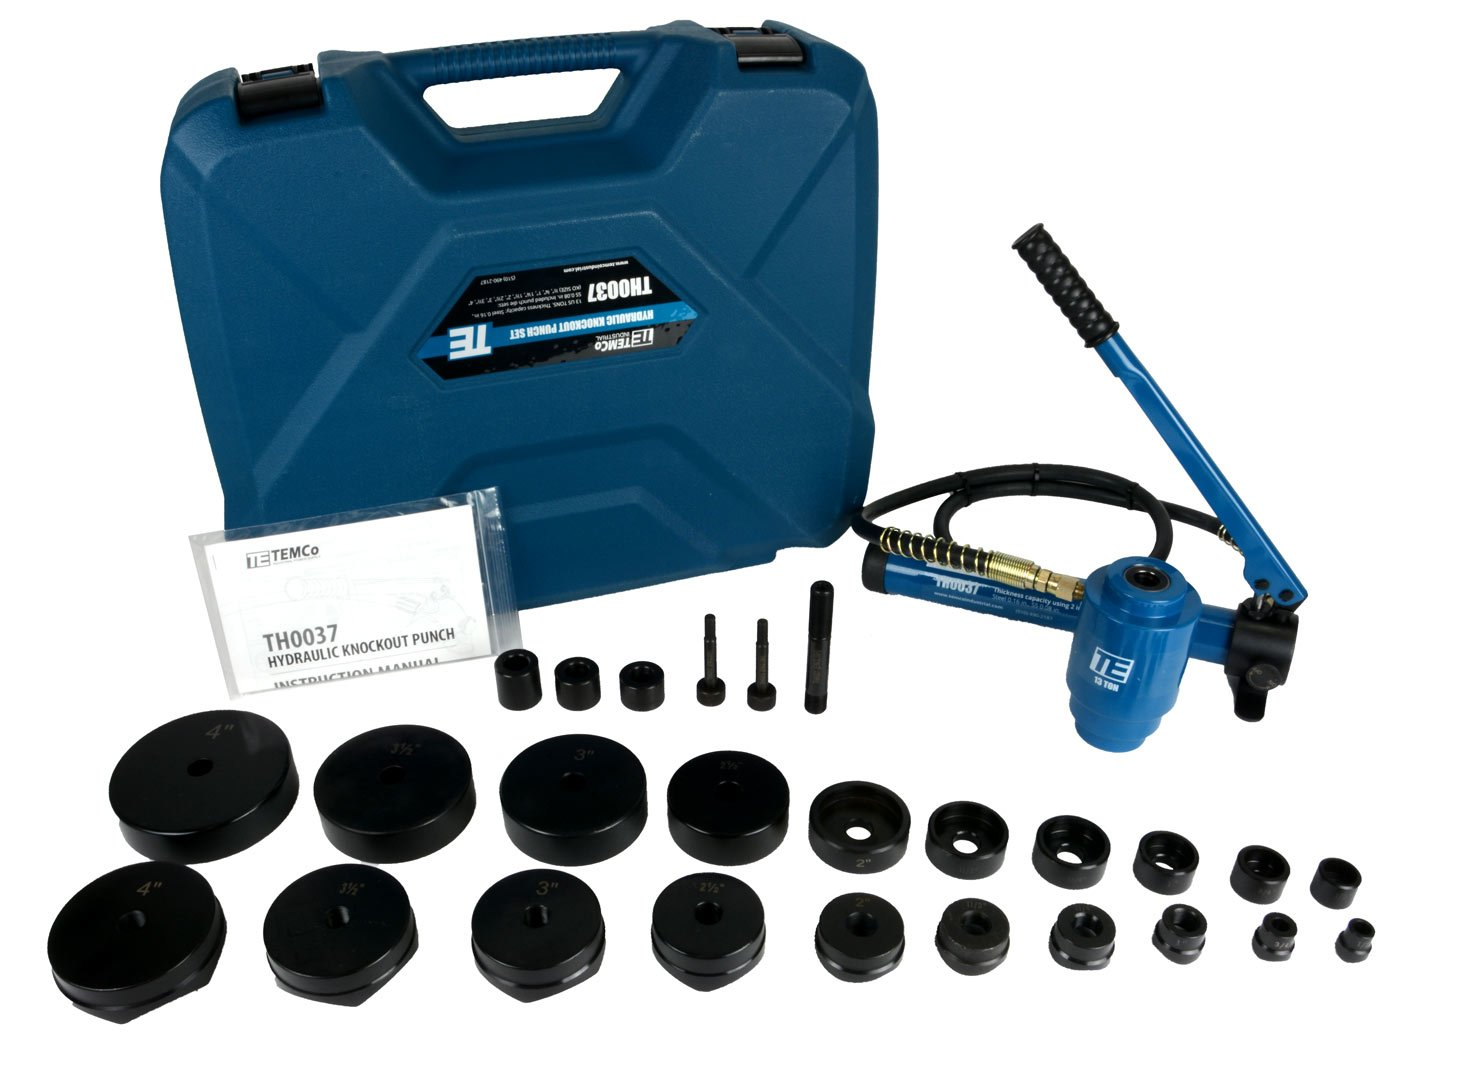 TEMCo TH0037 4'' HYDRAULIC KNOCKOUT PUNCH Electrical Conduit Hole Cutter Set KO Tool Kit 5 Year Warranty by Temco